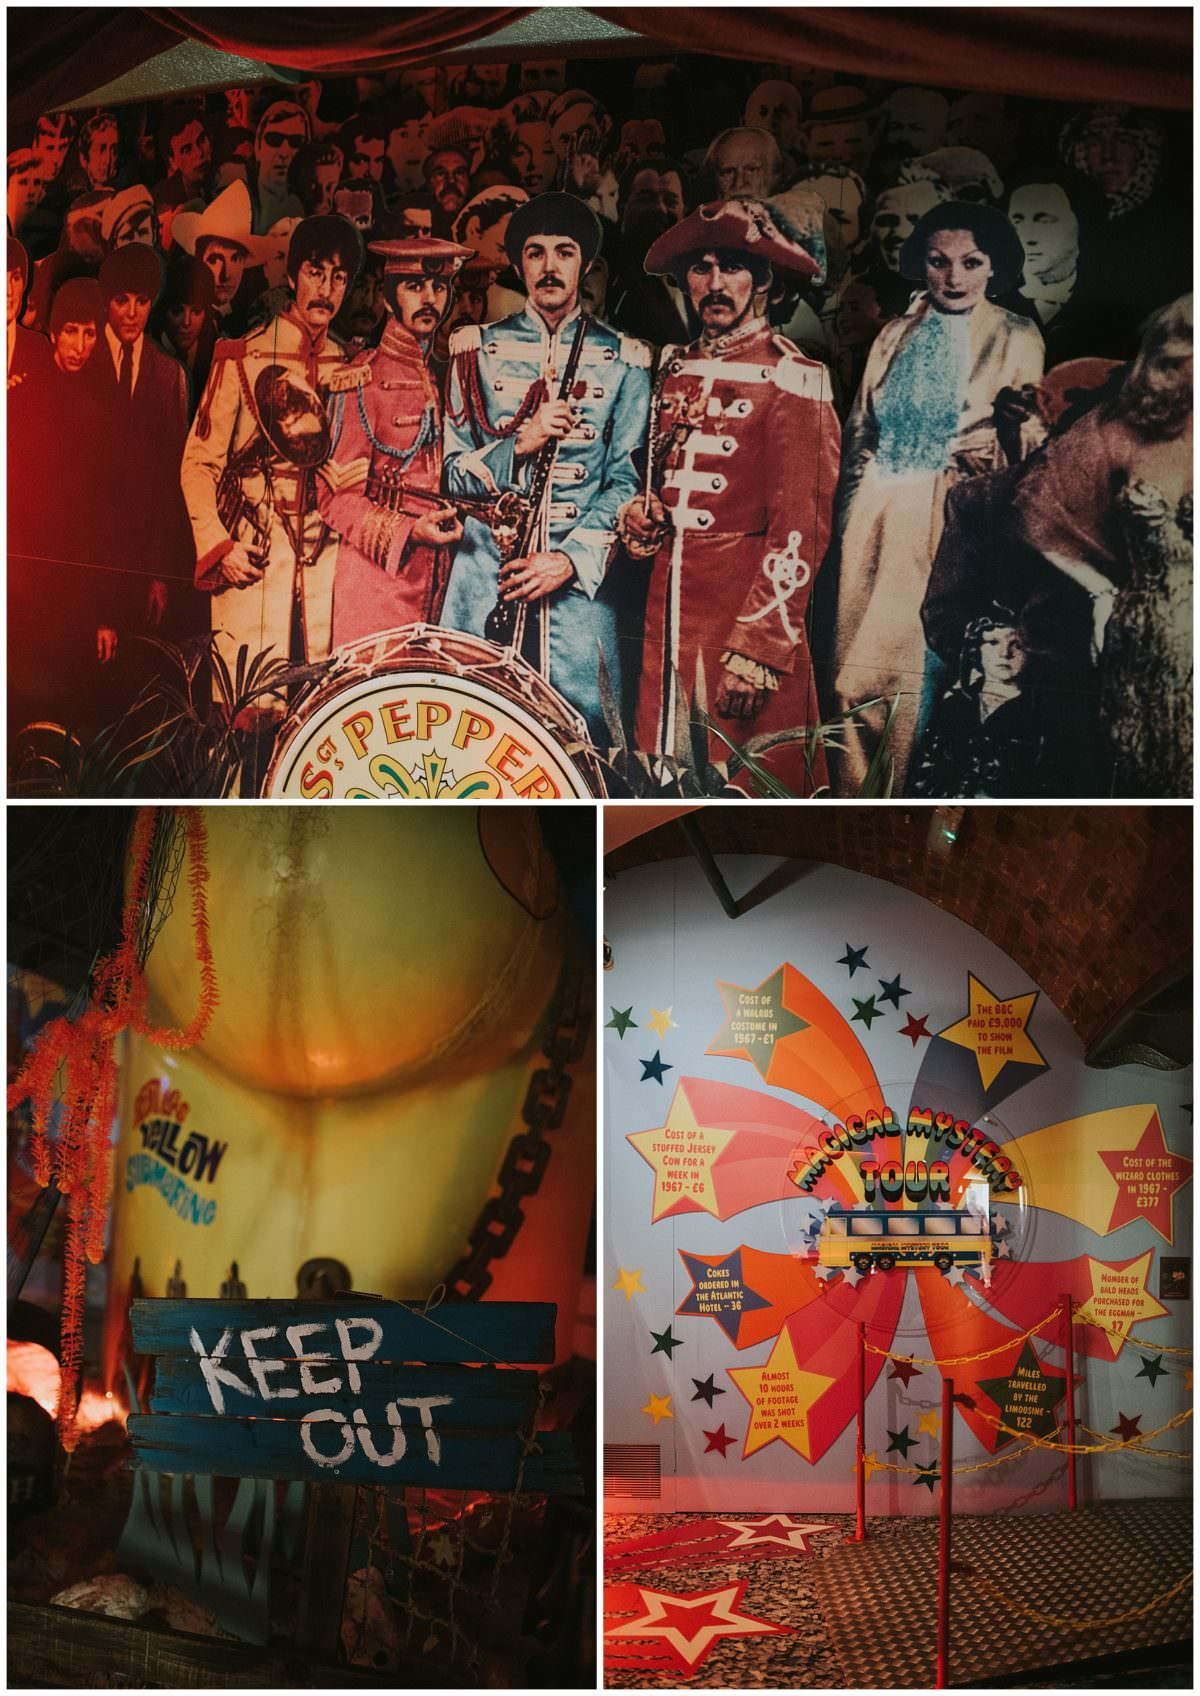 The Beatles Story, Liverpool review and photographs